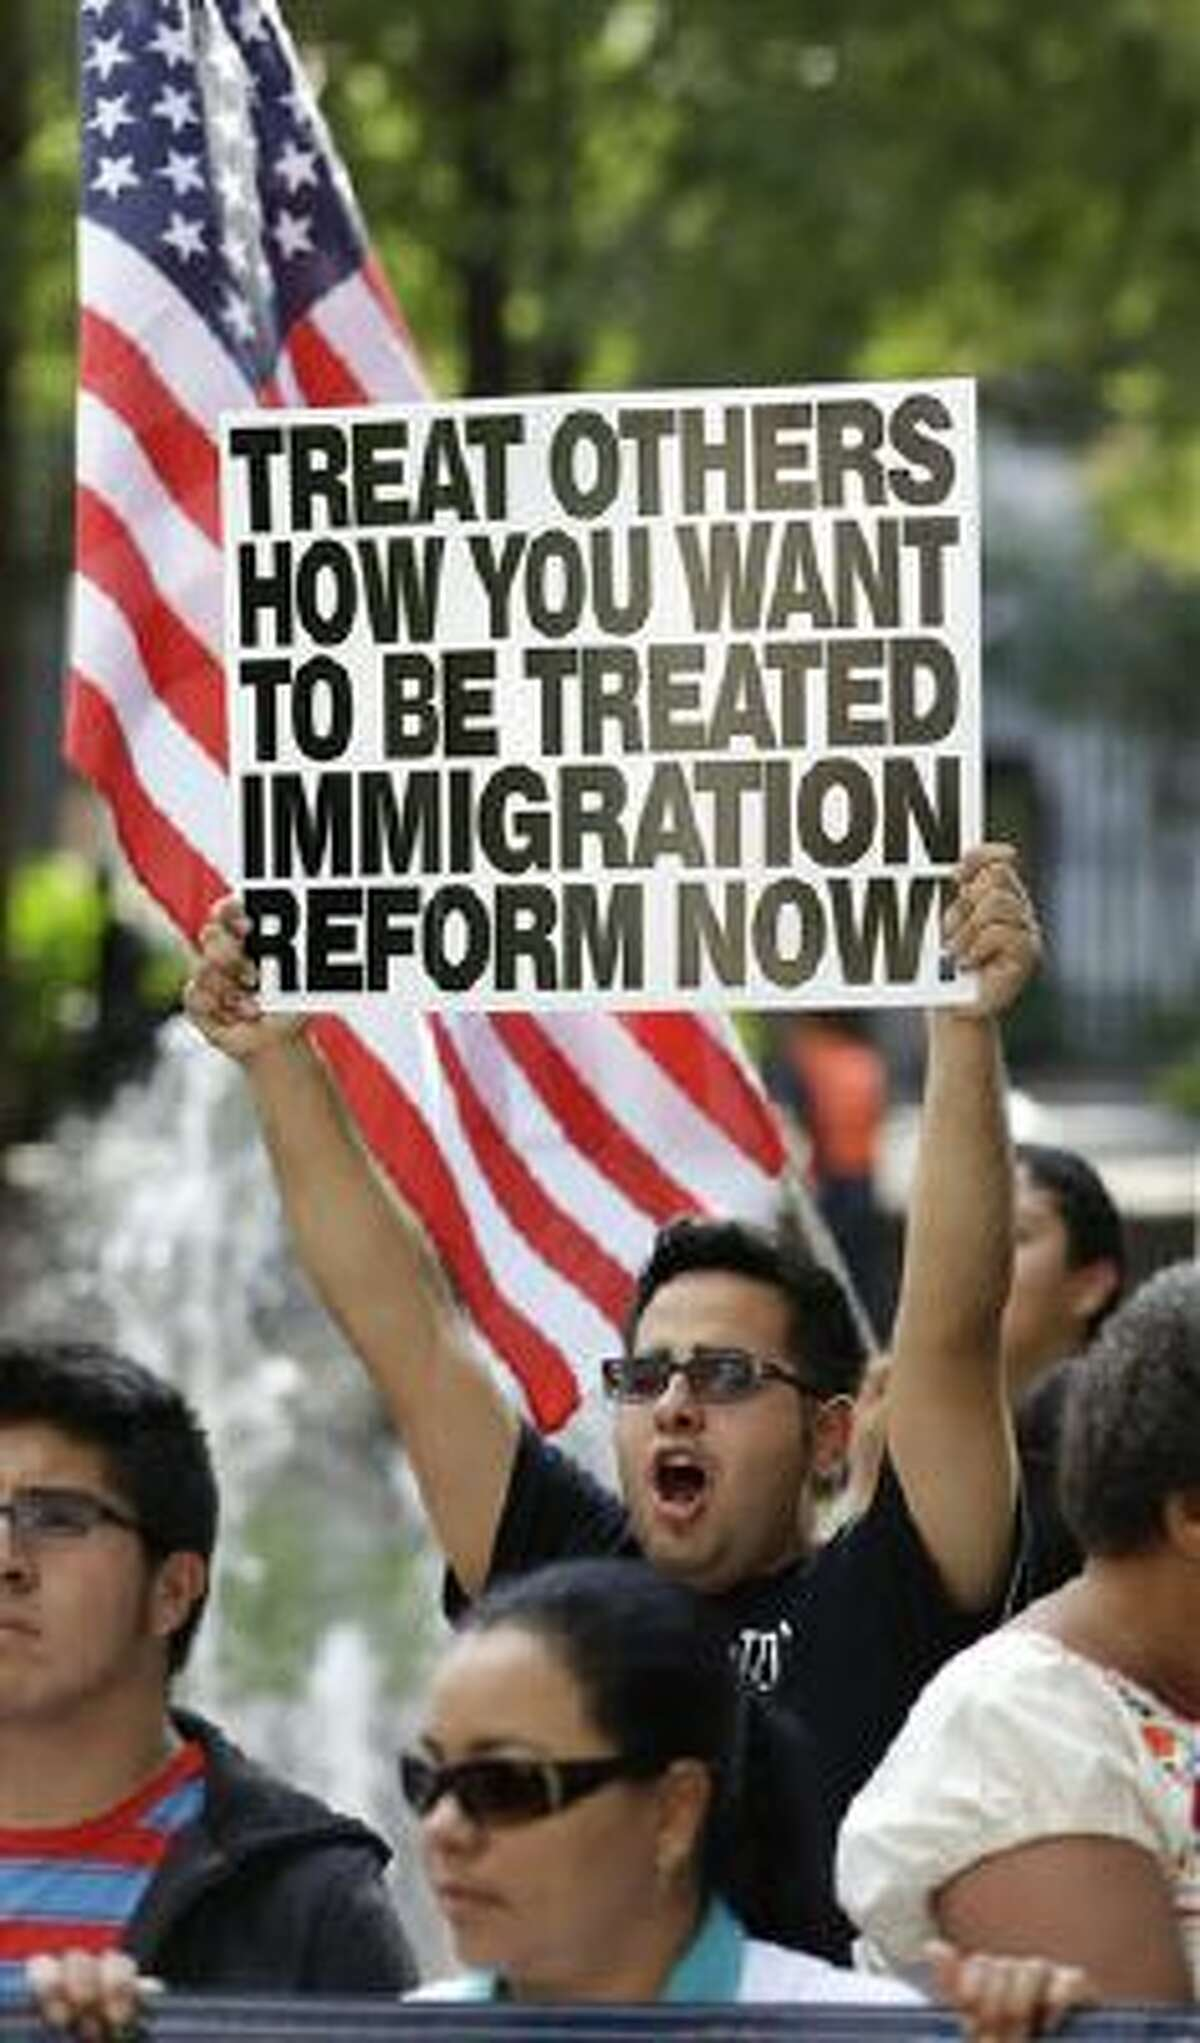 Immigration reform advocates march Tuesday in Orlando, Fla. The march and rally was to support passage of a pathway-to-citizenship bill for immigration reform.